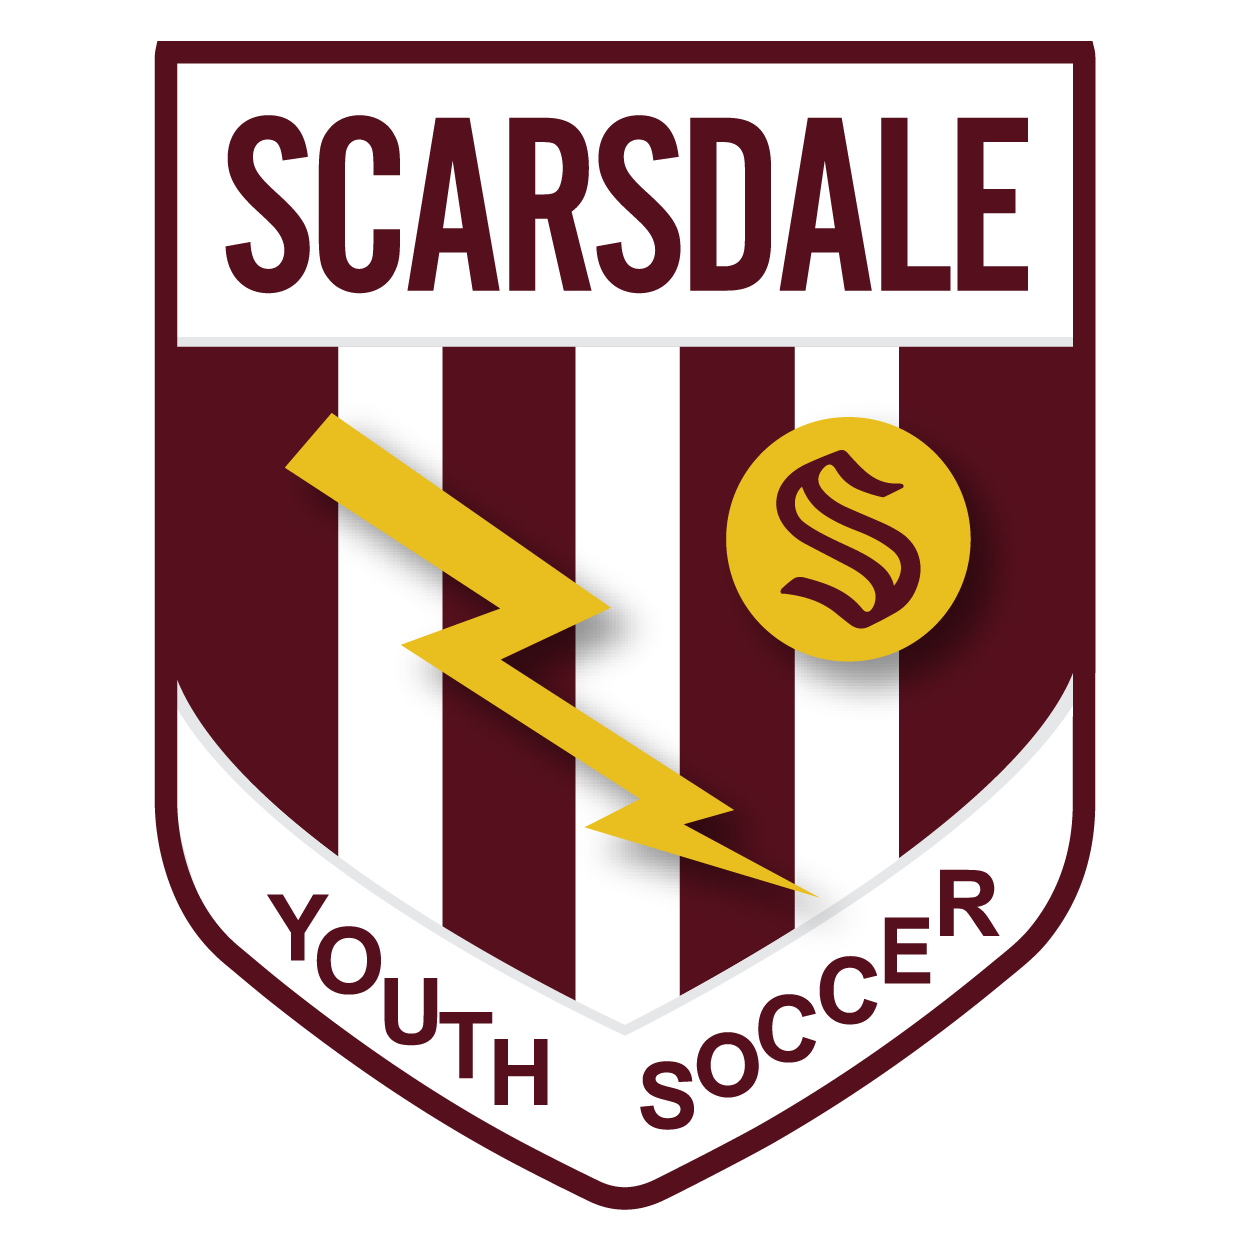 Important clipart important date. Uniforms scarsdale youth soccer